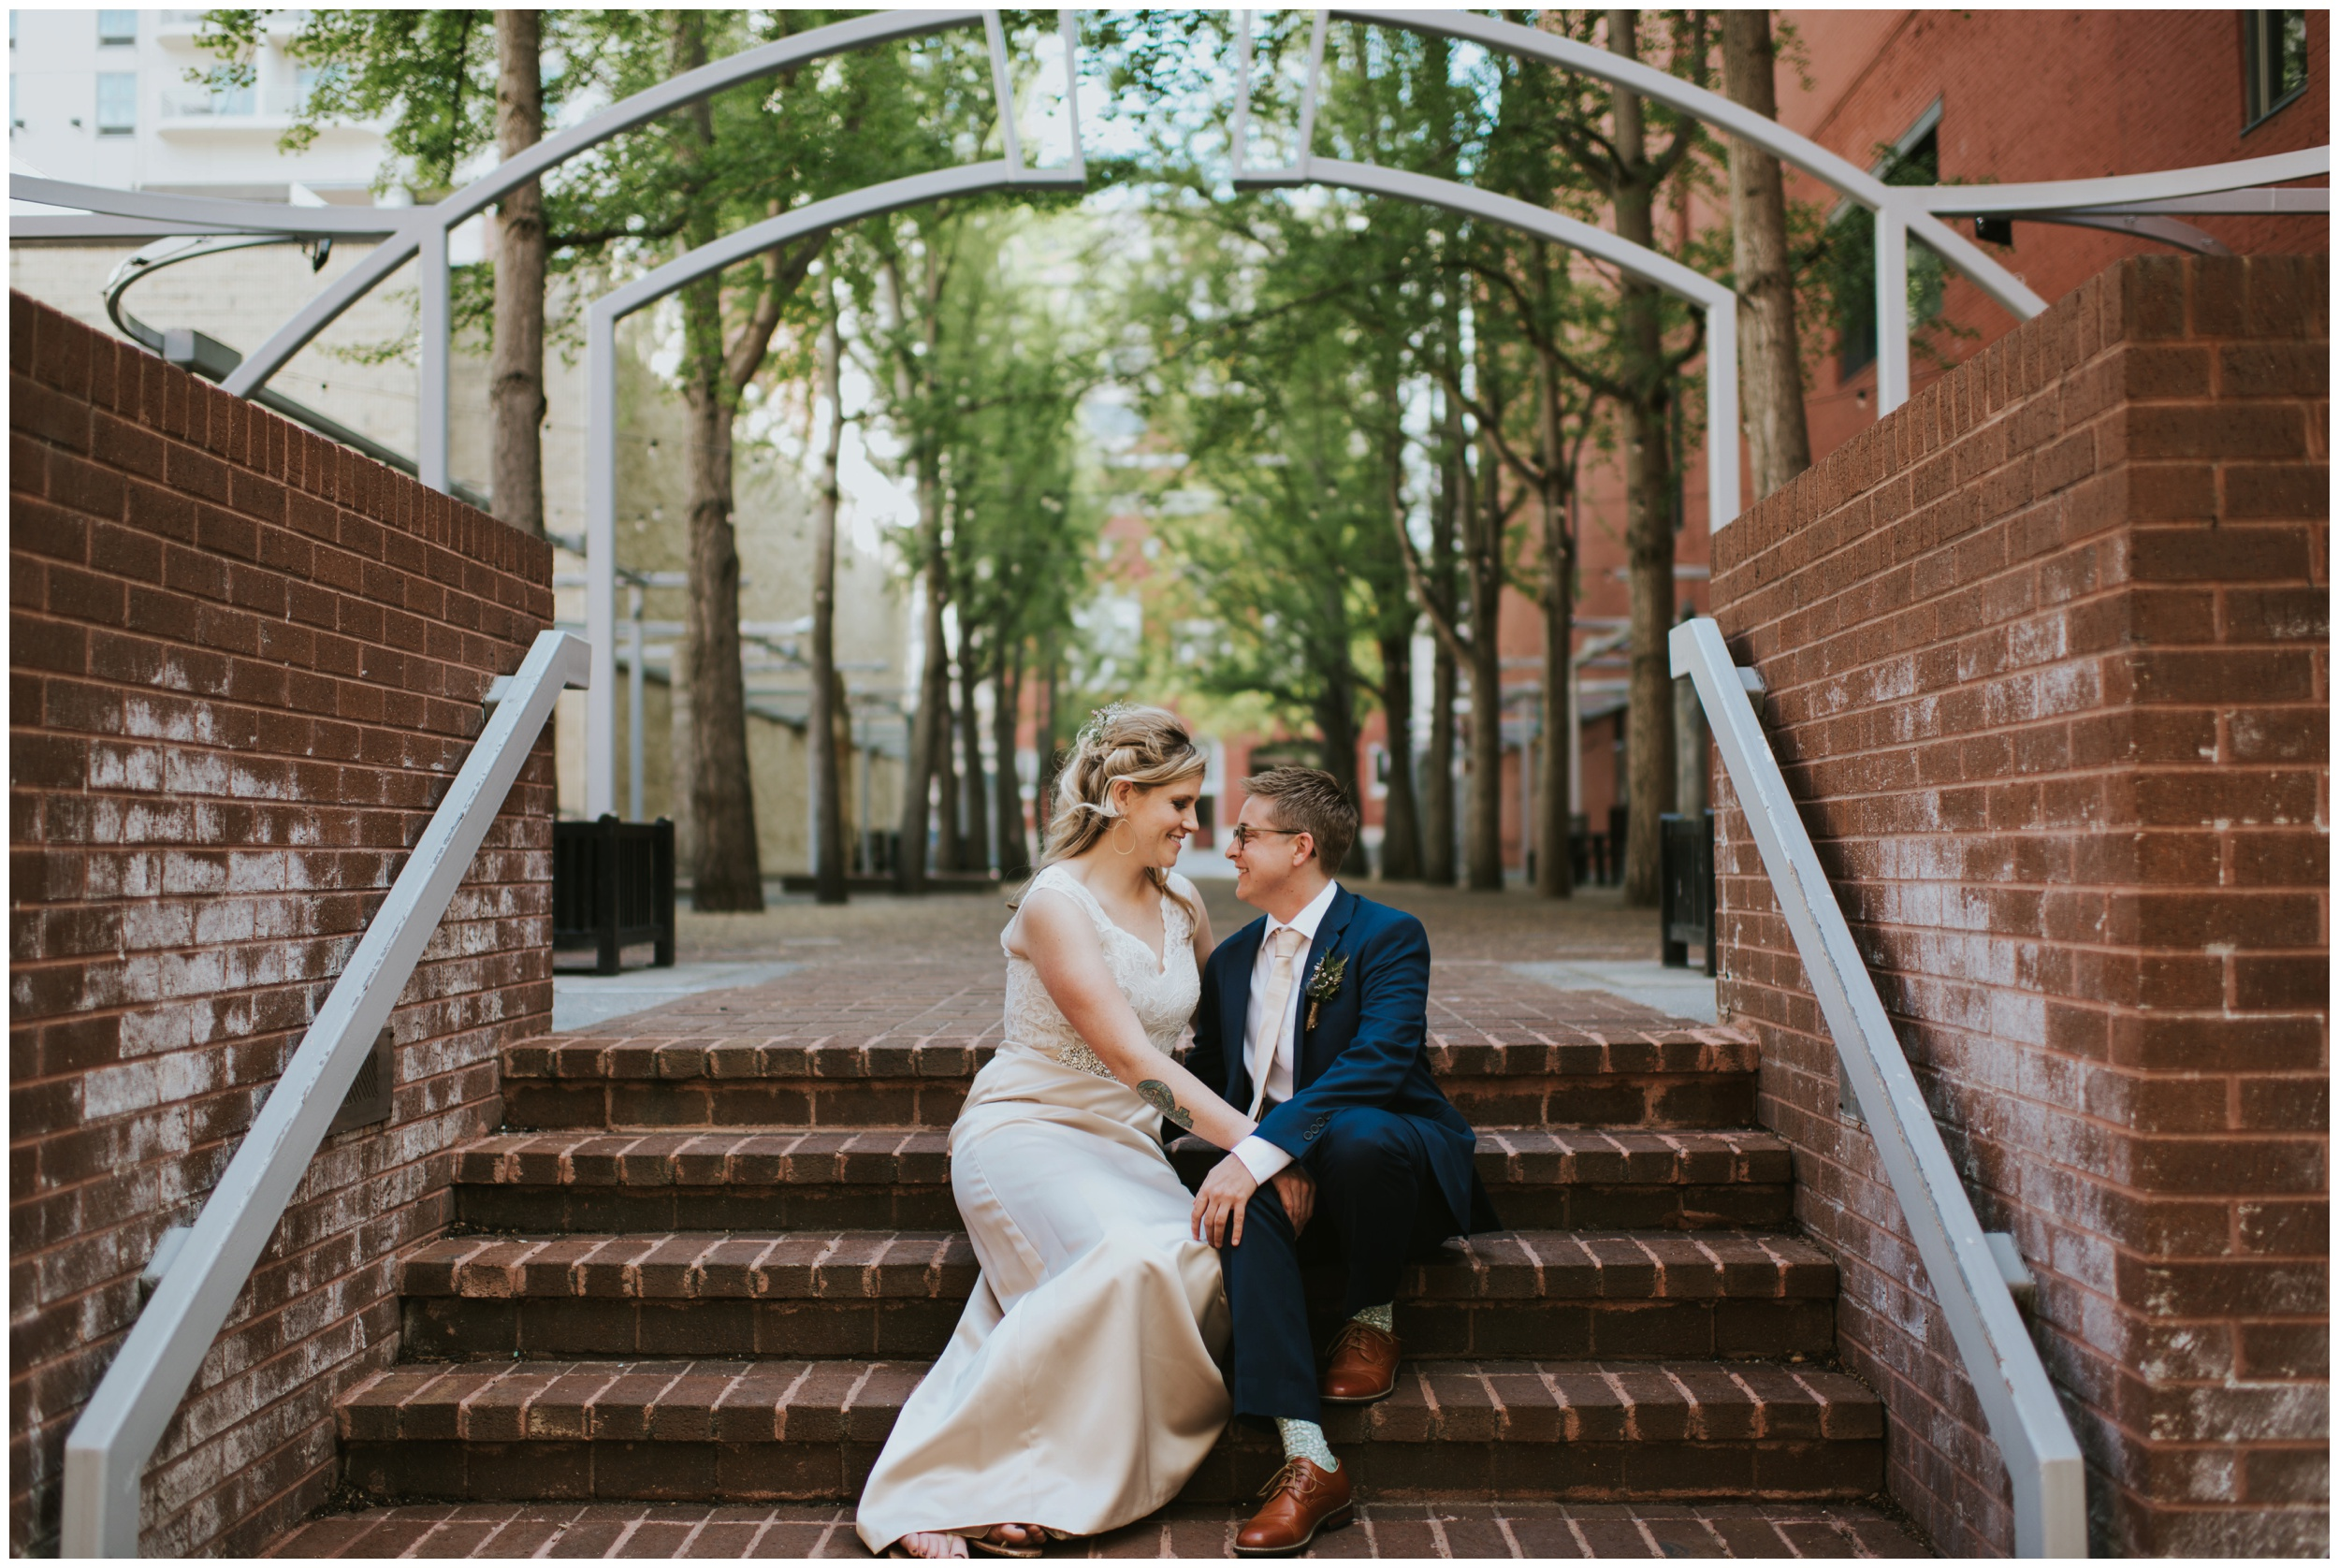 Century Plaza Roanoke Virginia. Wedding Photographer  | www.riversandroadsphotography.com